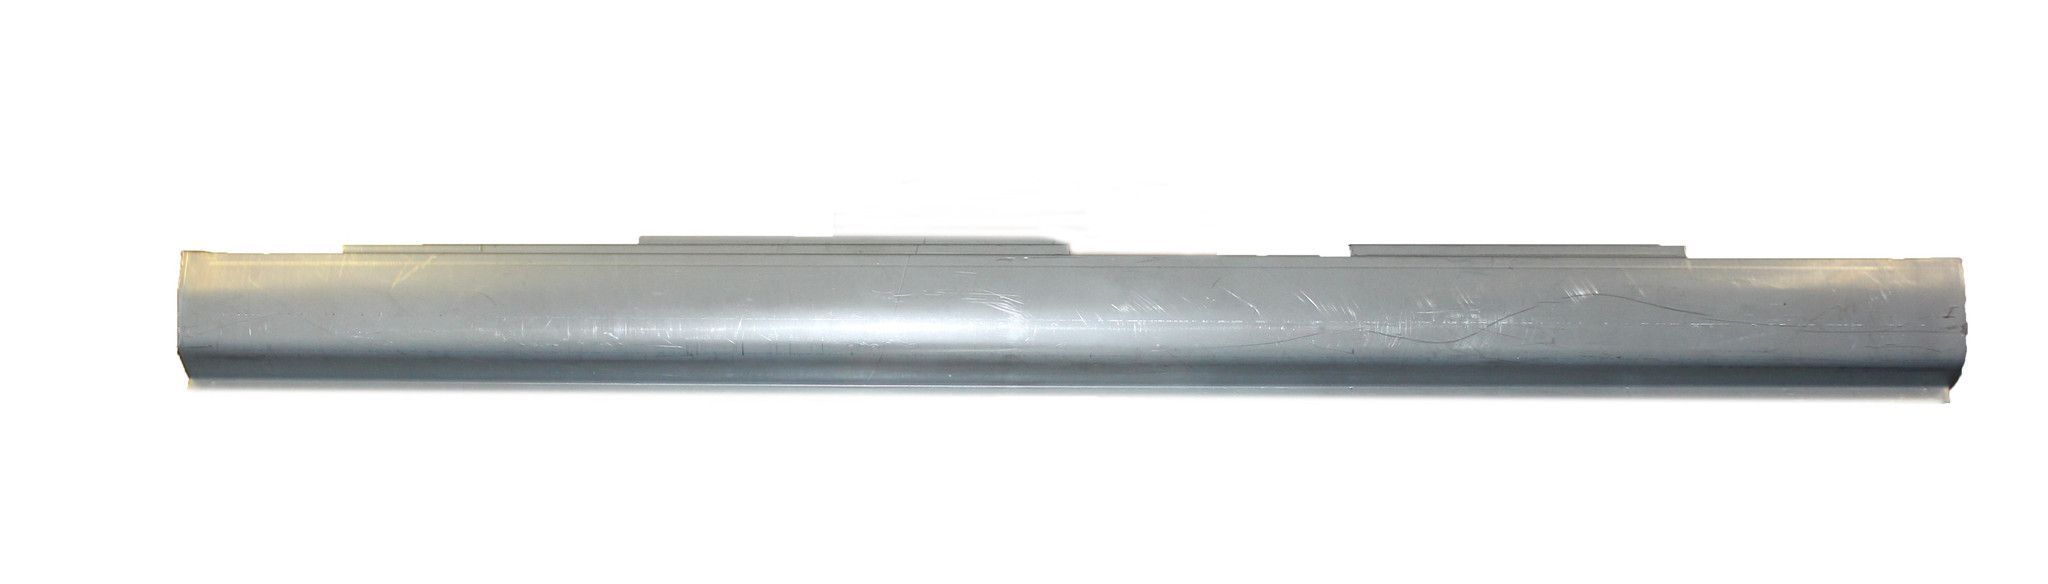 1962-1967 Chevy Chevy II Outer Rocker Panel 4DR, RH